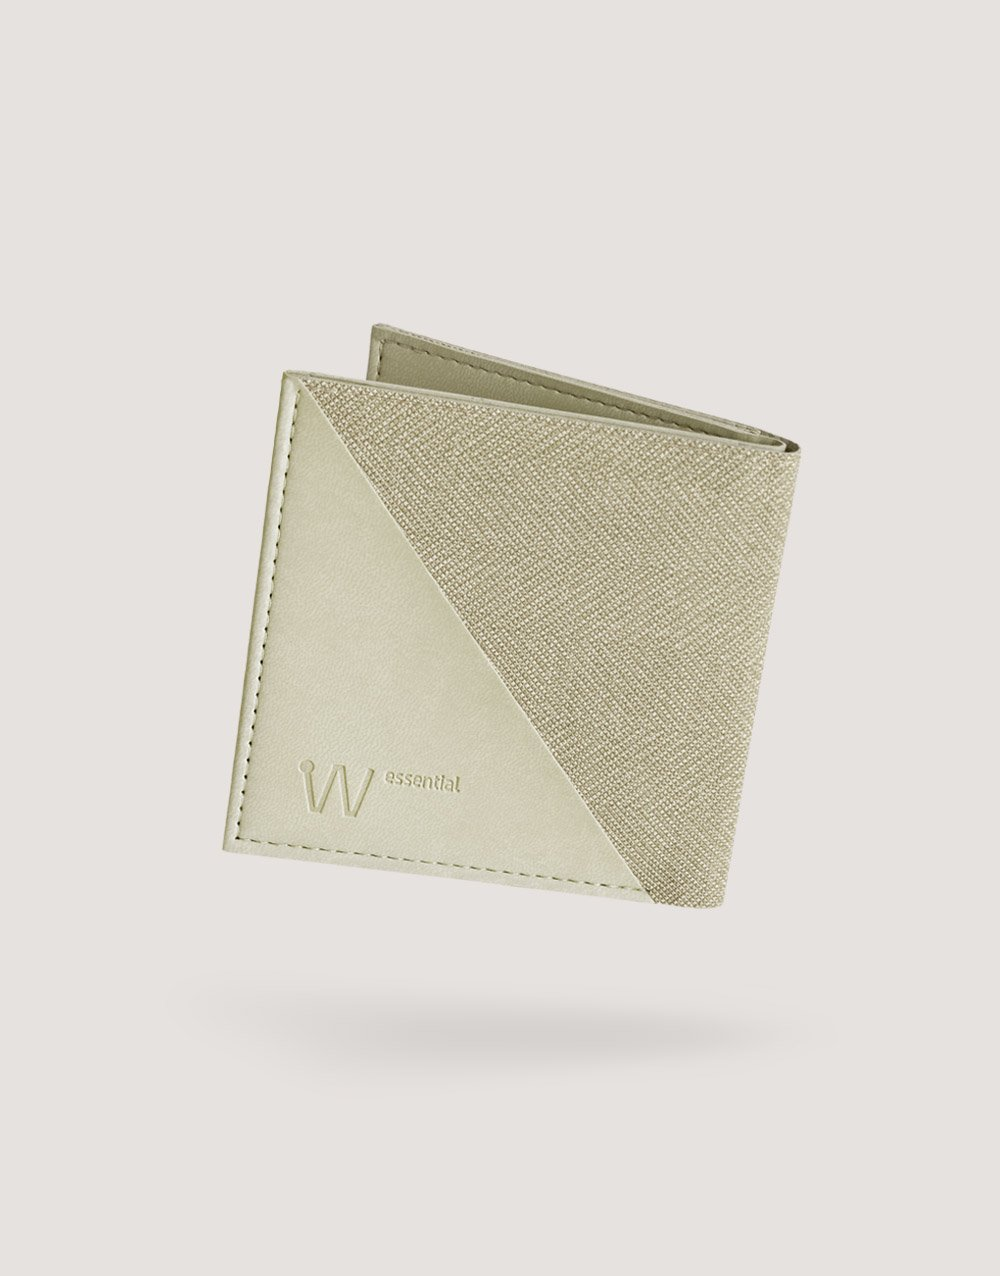 Baggizmo Wiseward Essential RFID protected wallet in sandy beige color